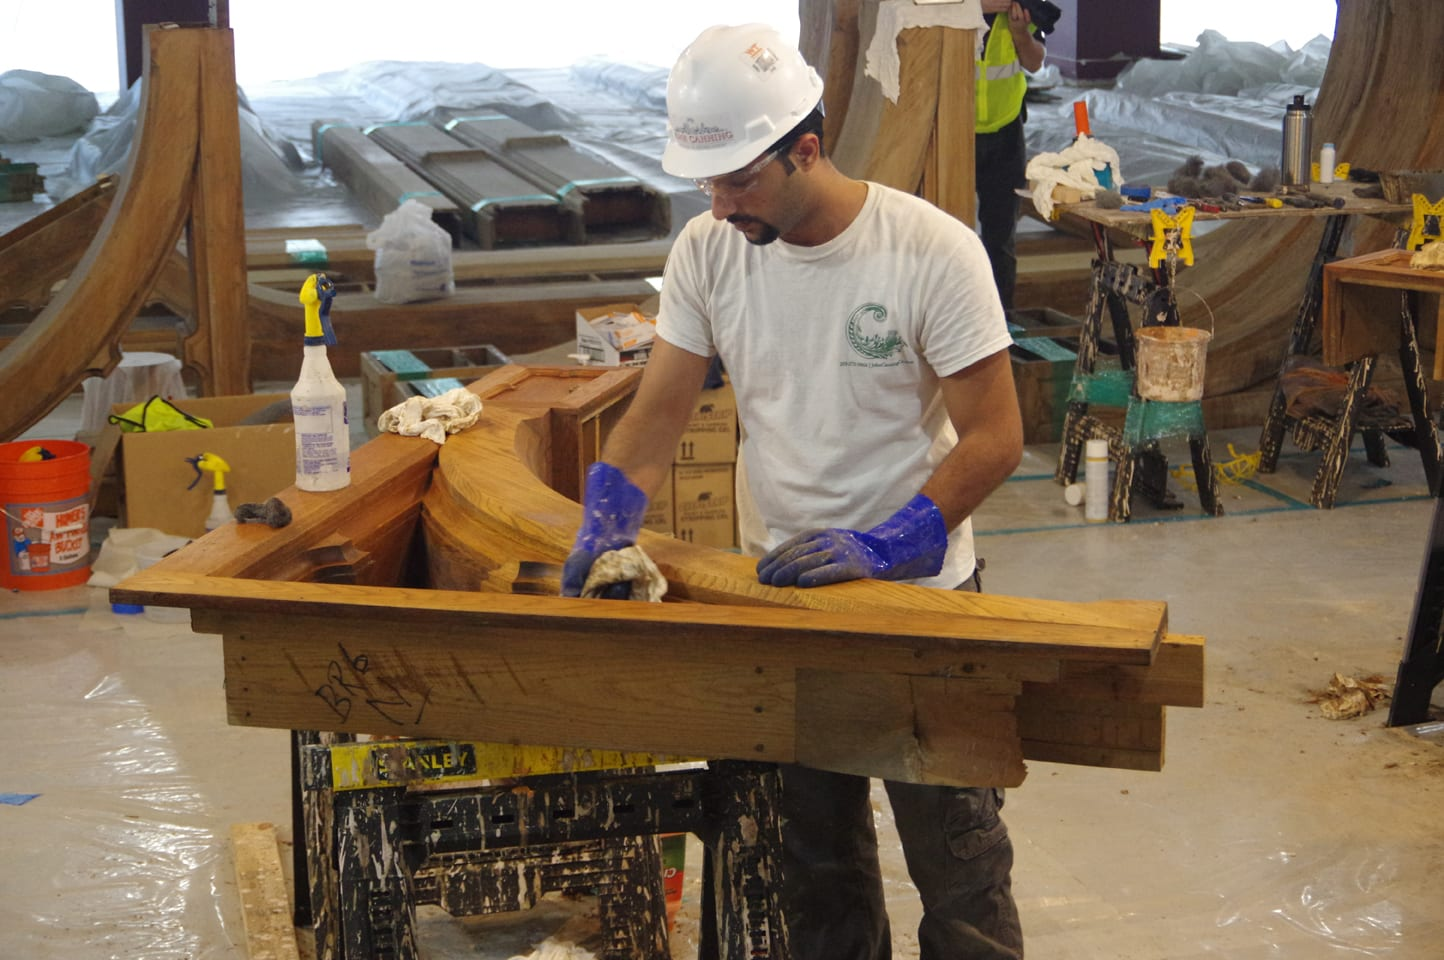 A dark-haired man in a white t-shirt and hardhat uses a cloth to wipe a heavy piece of wood sitting on sawhorses.